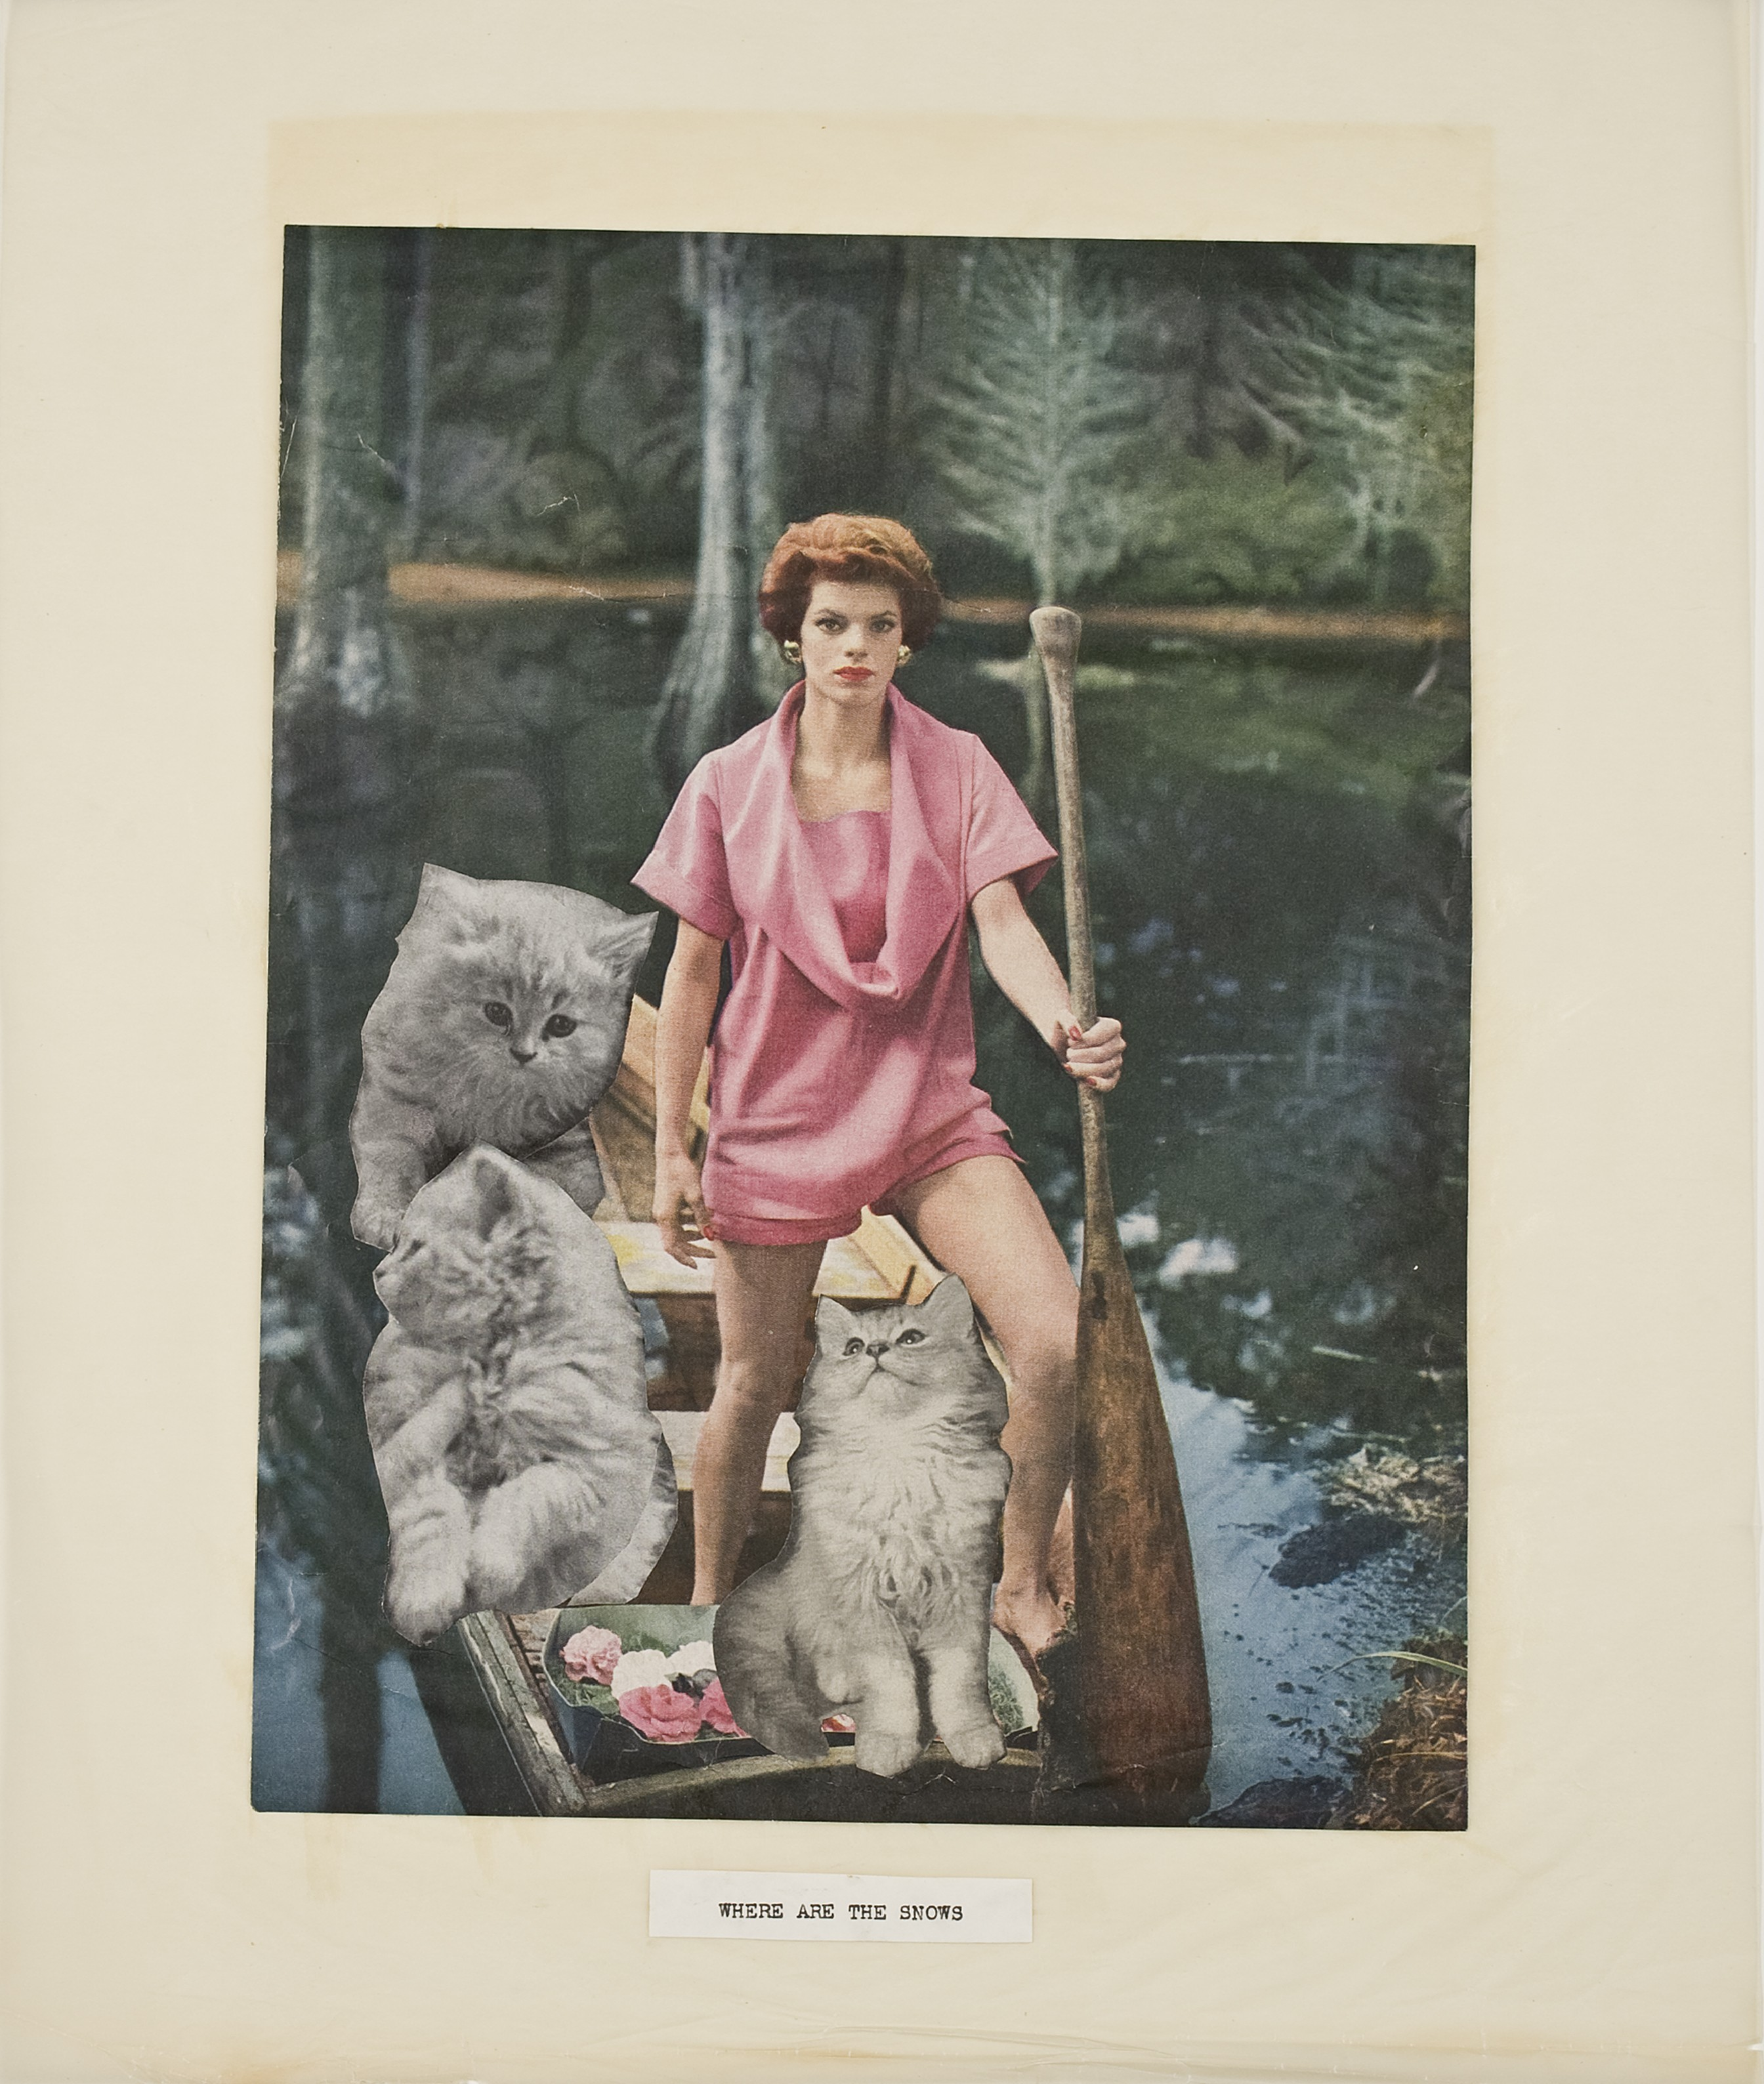 "A woman in a pink romper stands at the front of a canoe holding a paddle as if it were a scepter, with a view of a wooded lake behind her. Pasted into the canoe are three gray cats. At the bottom, the words ""WHERE ARE THE SNOWS."""